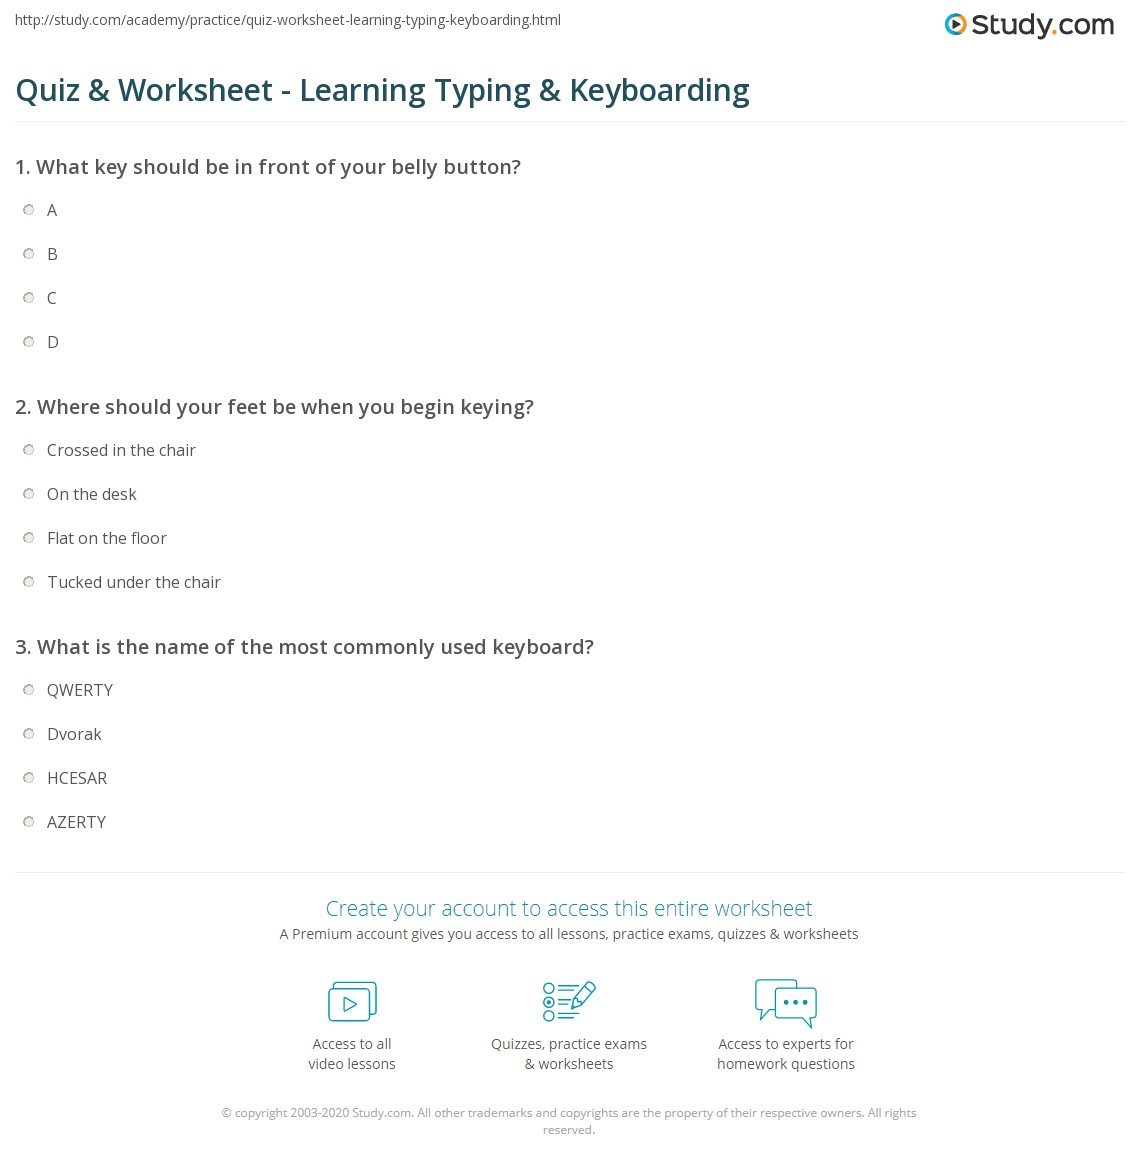 worksheet Keyboarding Worksheets quiz worksheet learning typing keyboarding study com print how to learn type worksheet